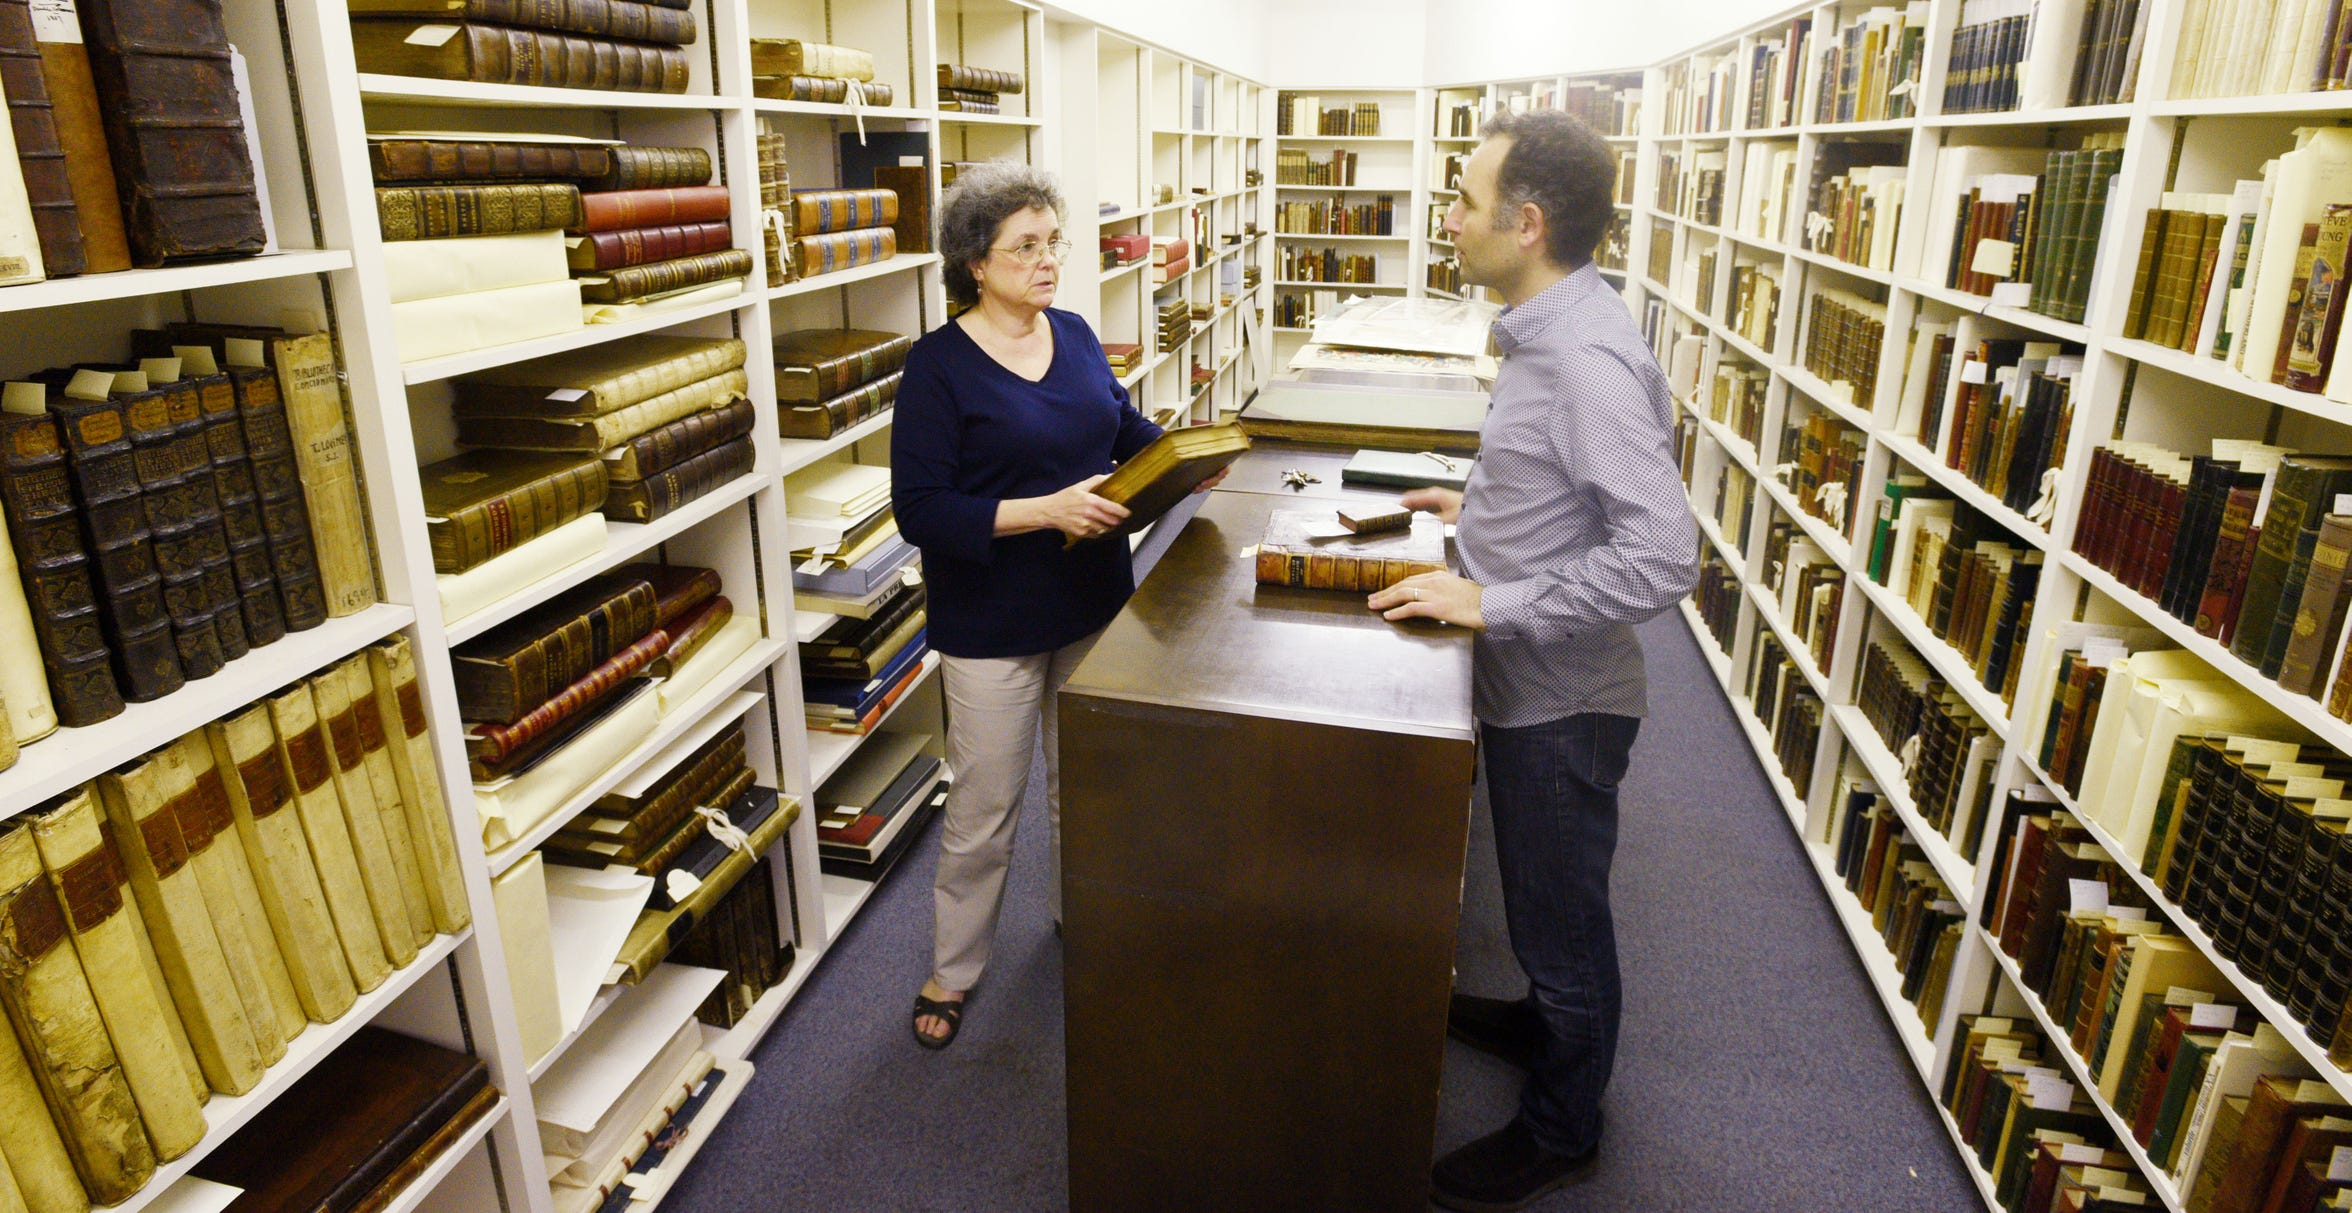 The rare book collection at Noel Memorial Library's Director Martha Lawler and Curator Alexander Mikaberidze inside the vault.